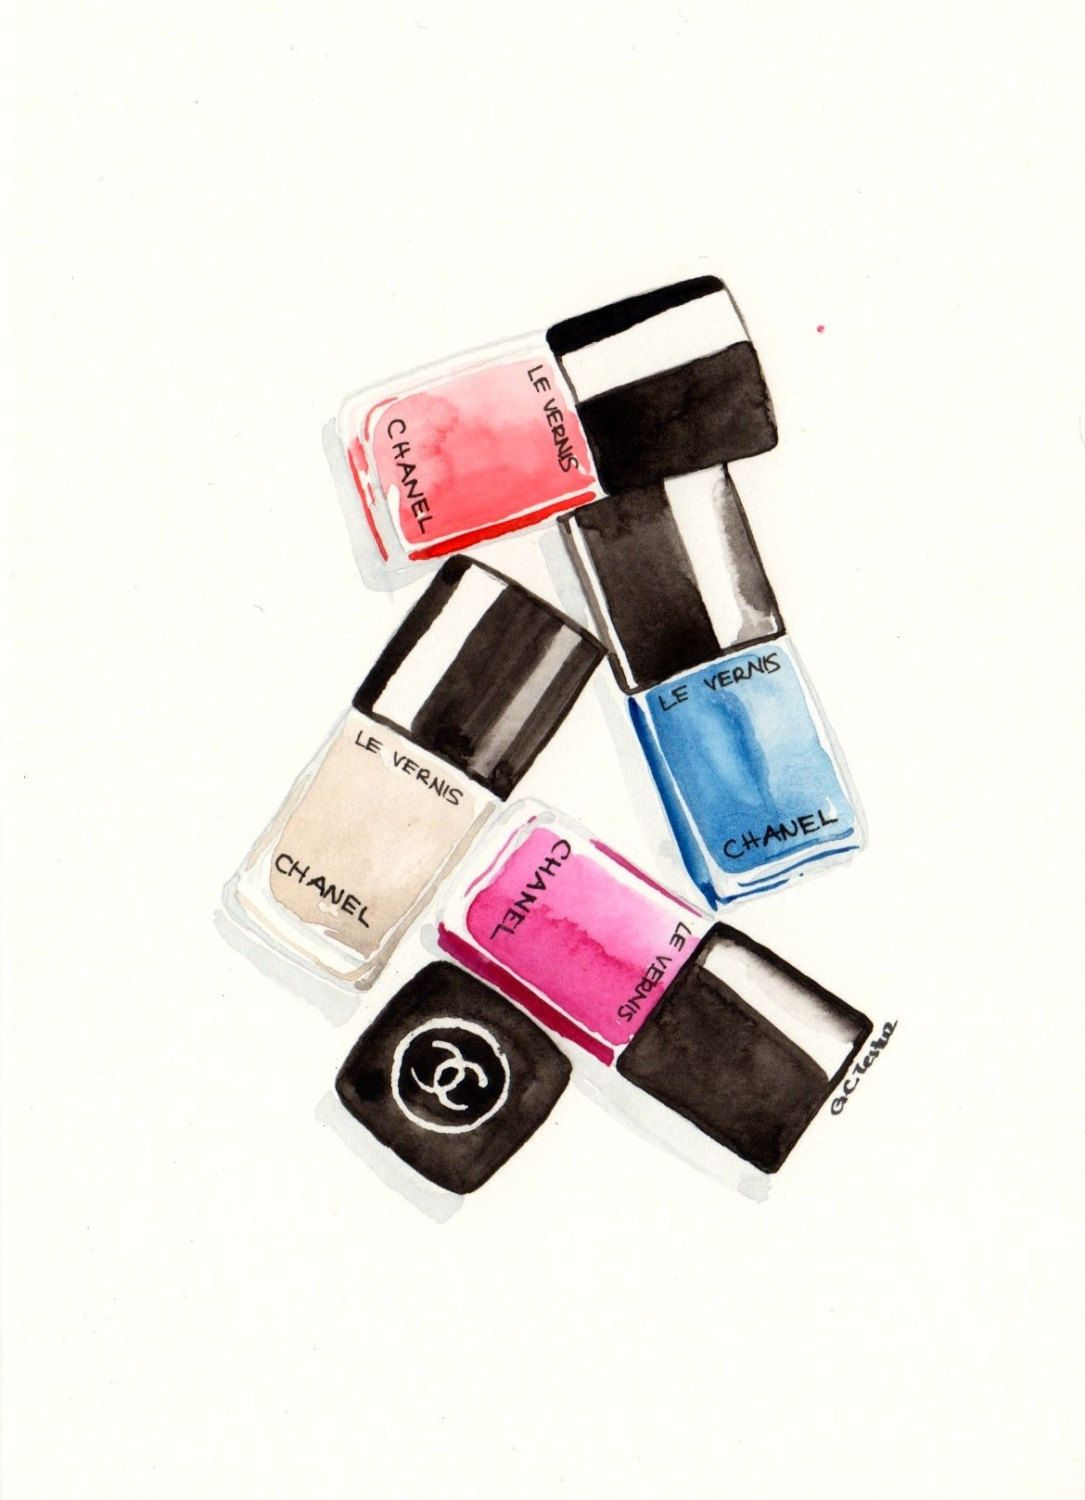 Chanel nail polishes Watercolor Make-Up illustration by MilkFoam